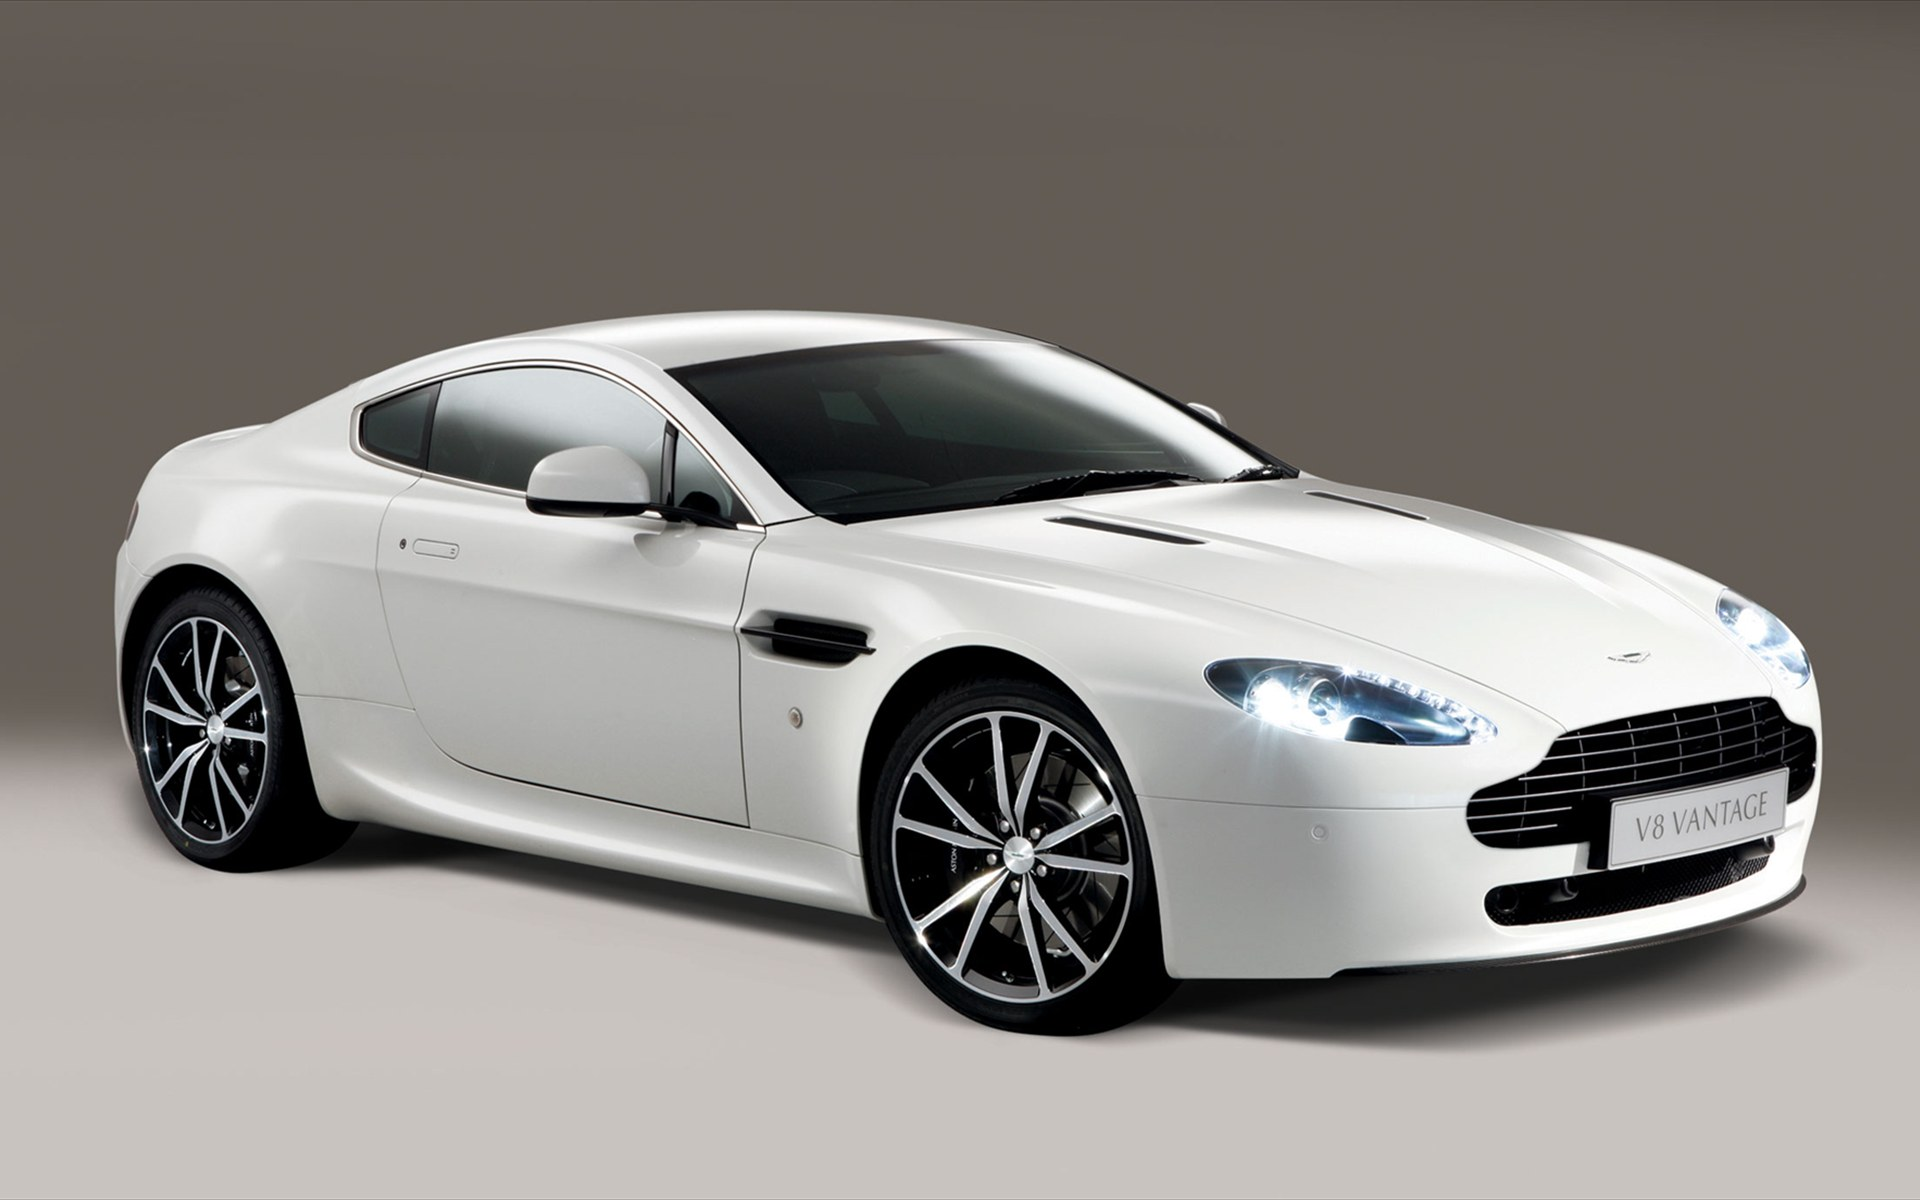 2011 aston martin v8 vantage n420 review photos price. Black Bedroom Furniture Sets. Home Design Ideas